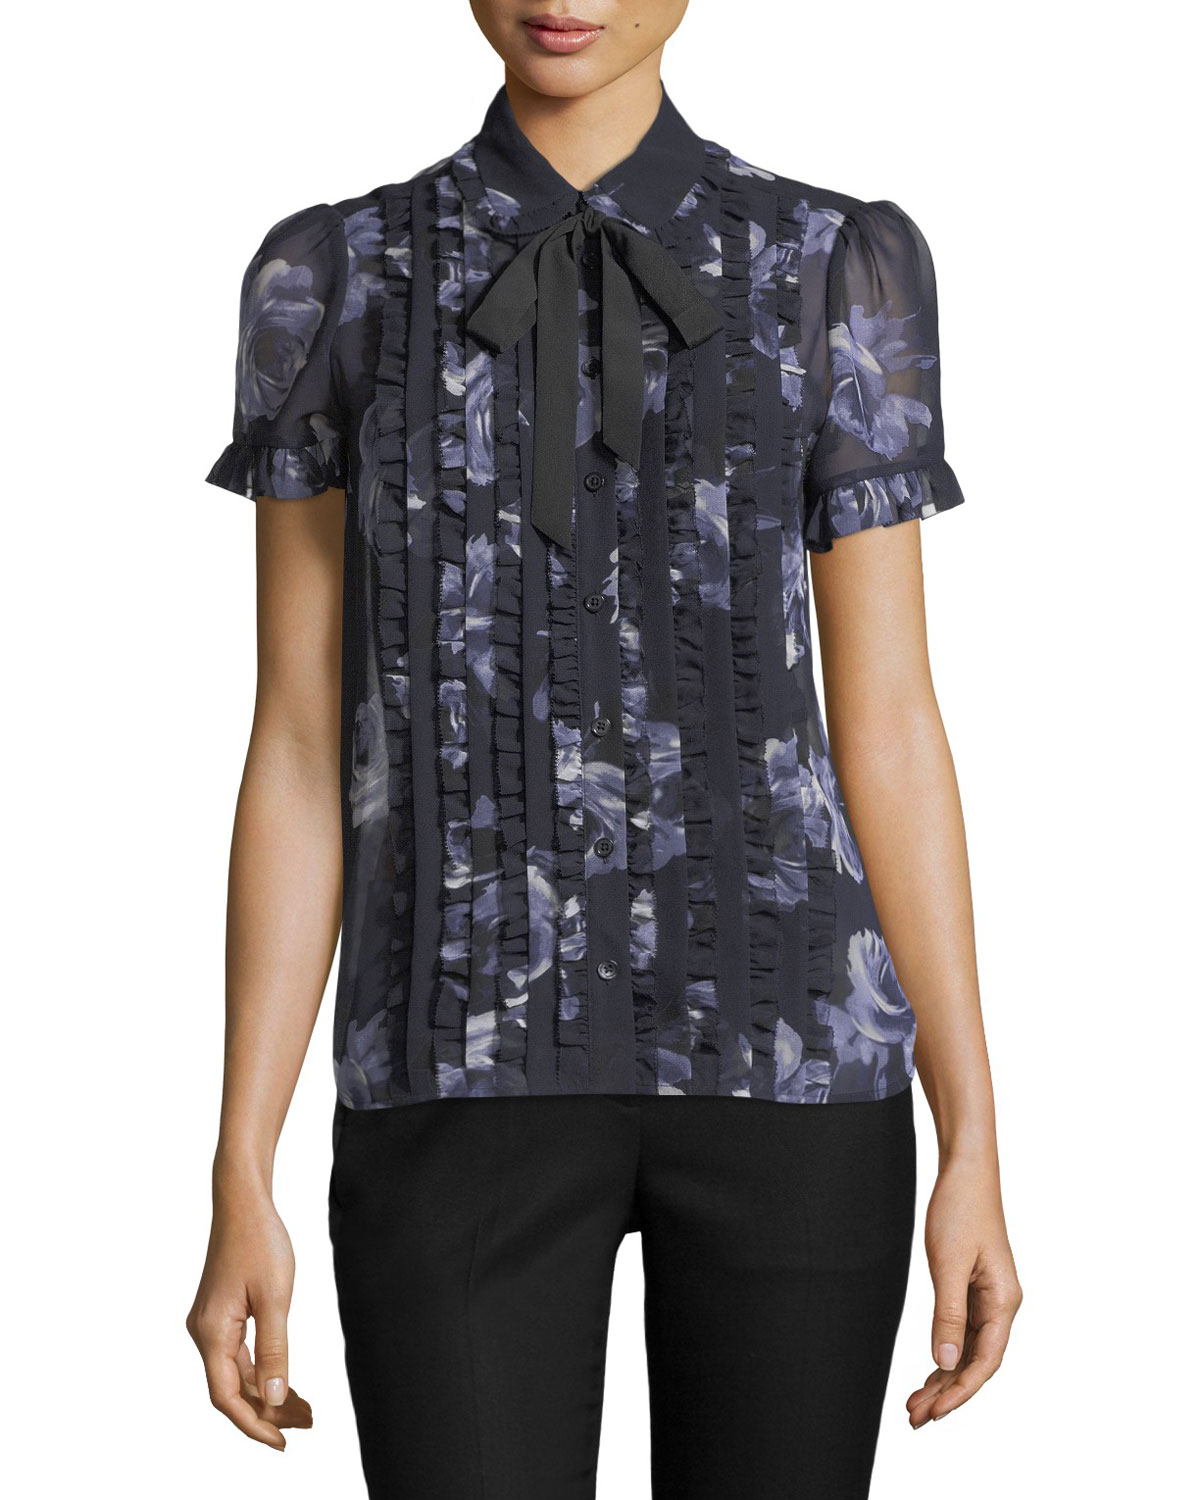 night rose sheer short-sleeve button-front top